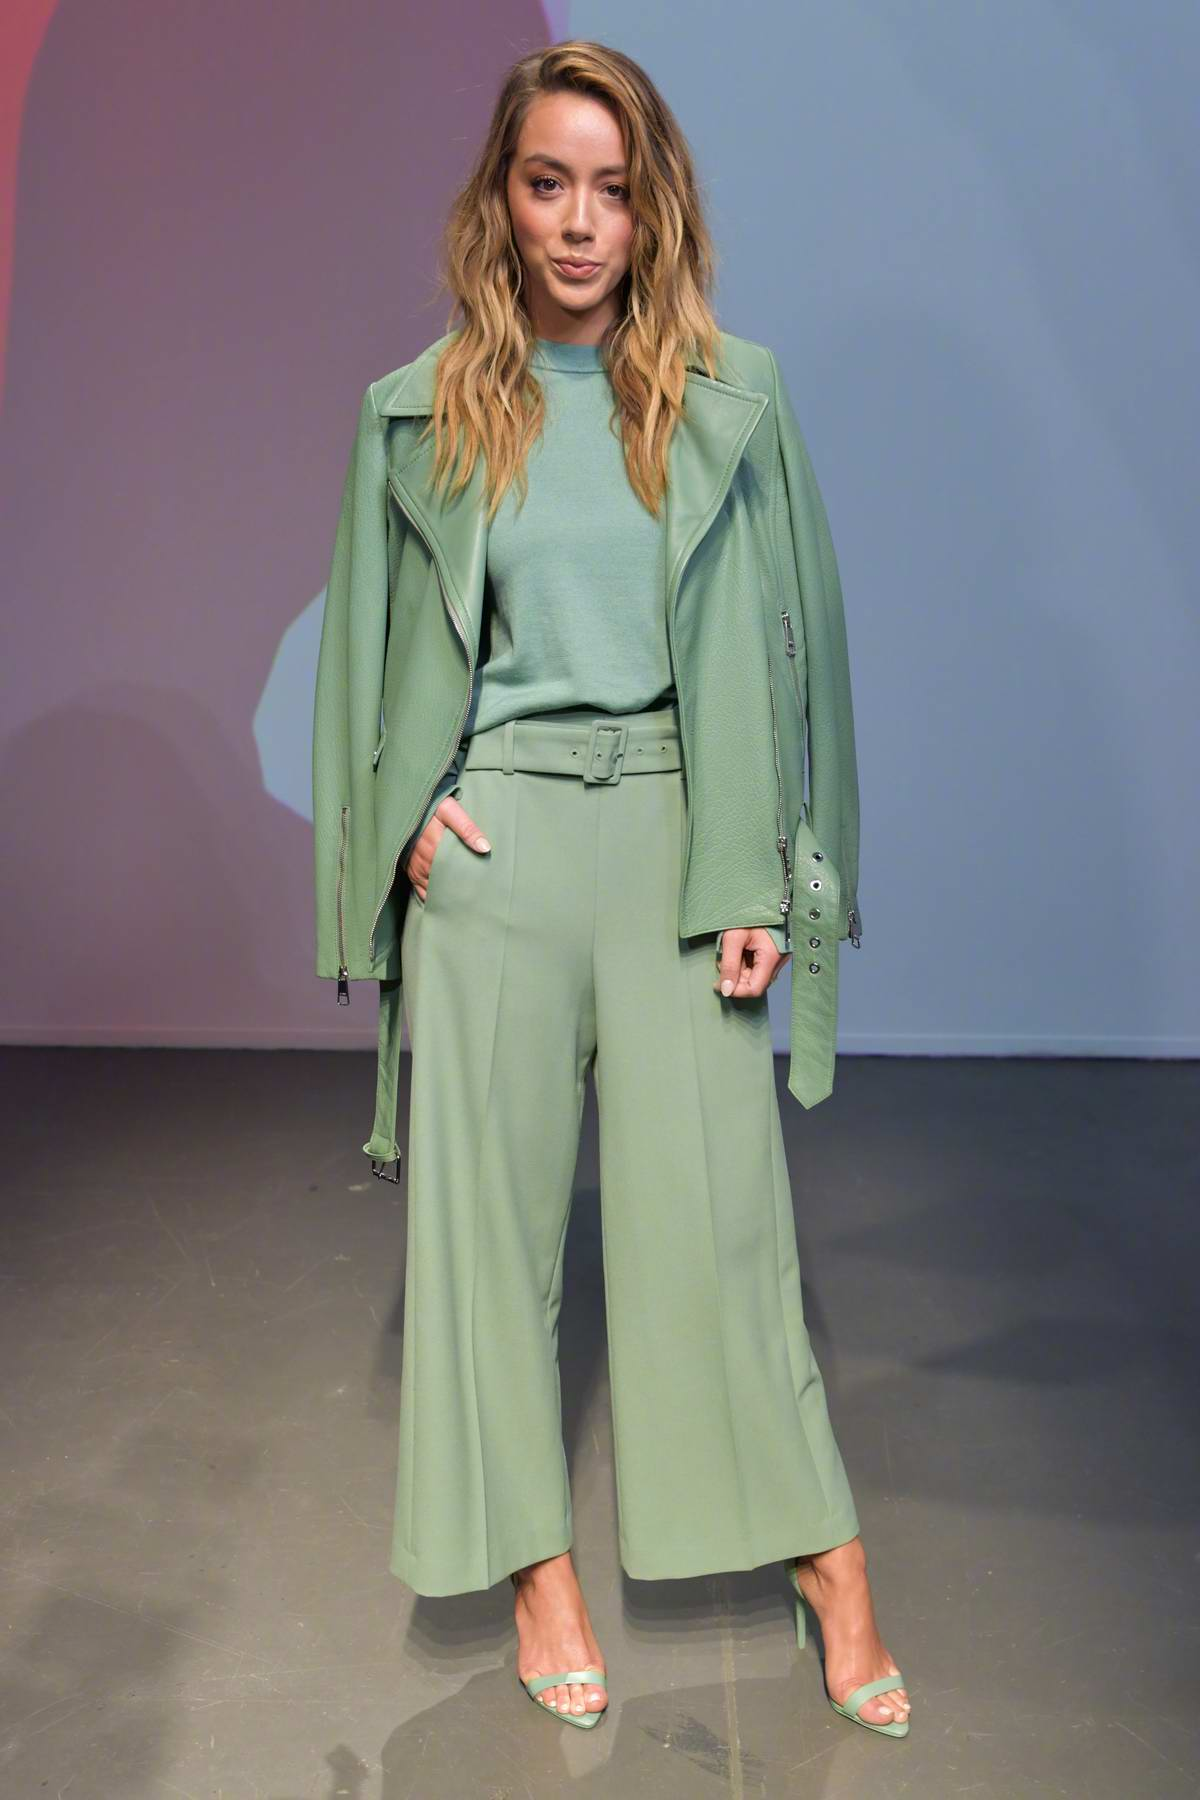 Chloe Bennet attends Boss Fashion show during Milan Fashion Week, Spring/Summer 2020 in Milan, Italy